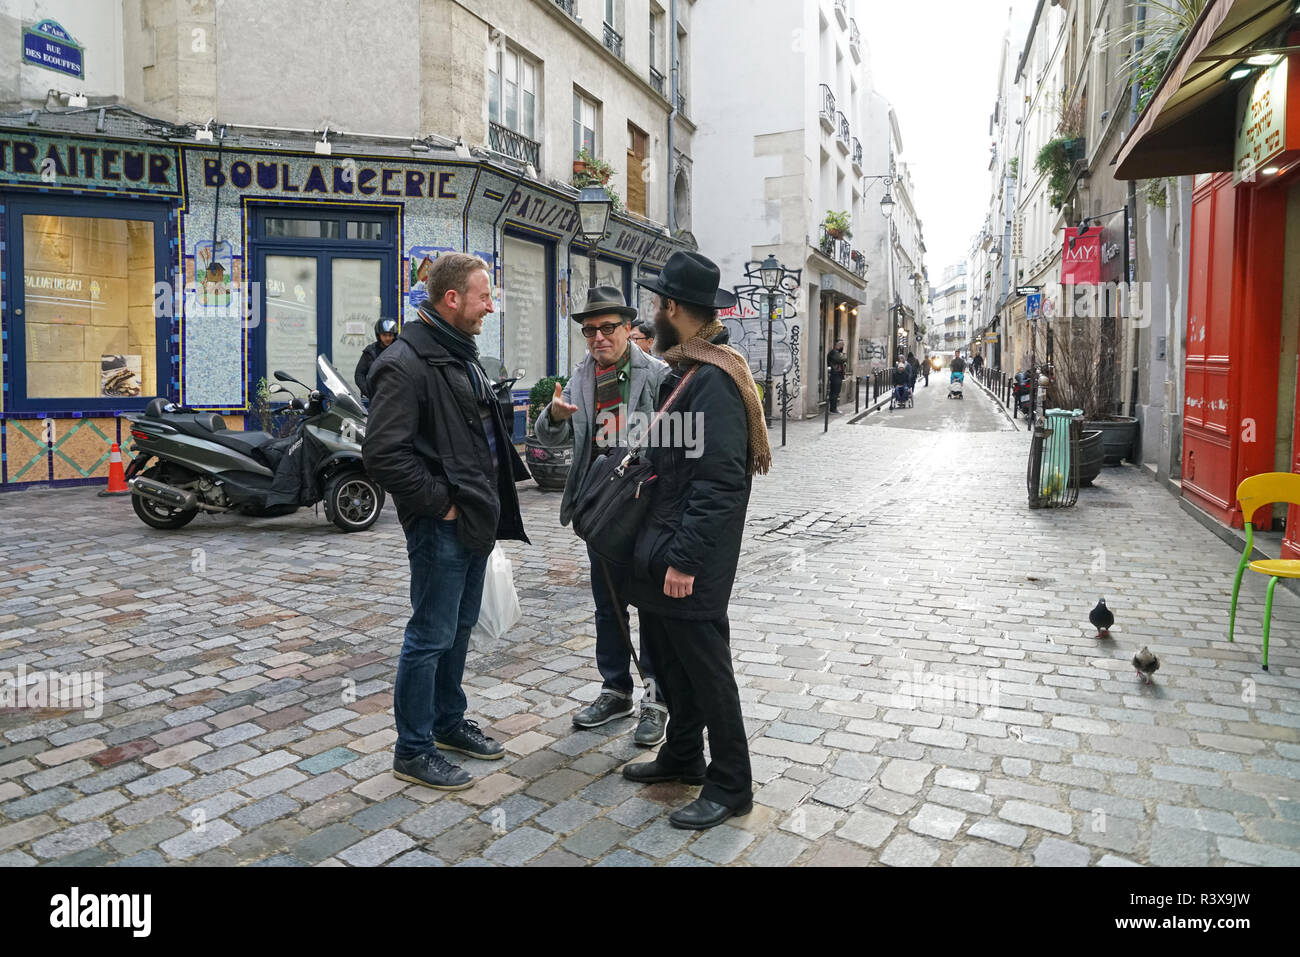 Men conversing on the ancient rue des Ecouffes in the Marais district of Paris. The street dates from the 13th century. - Stock Image